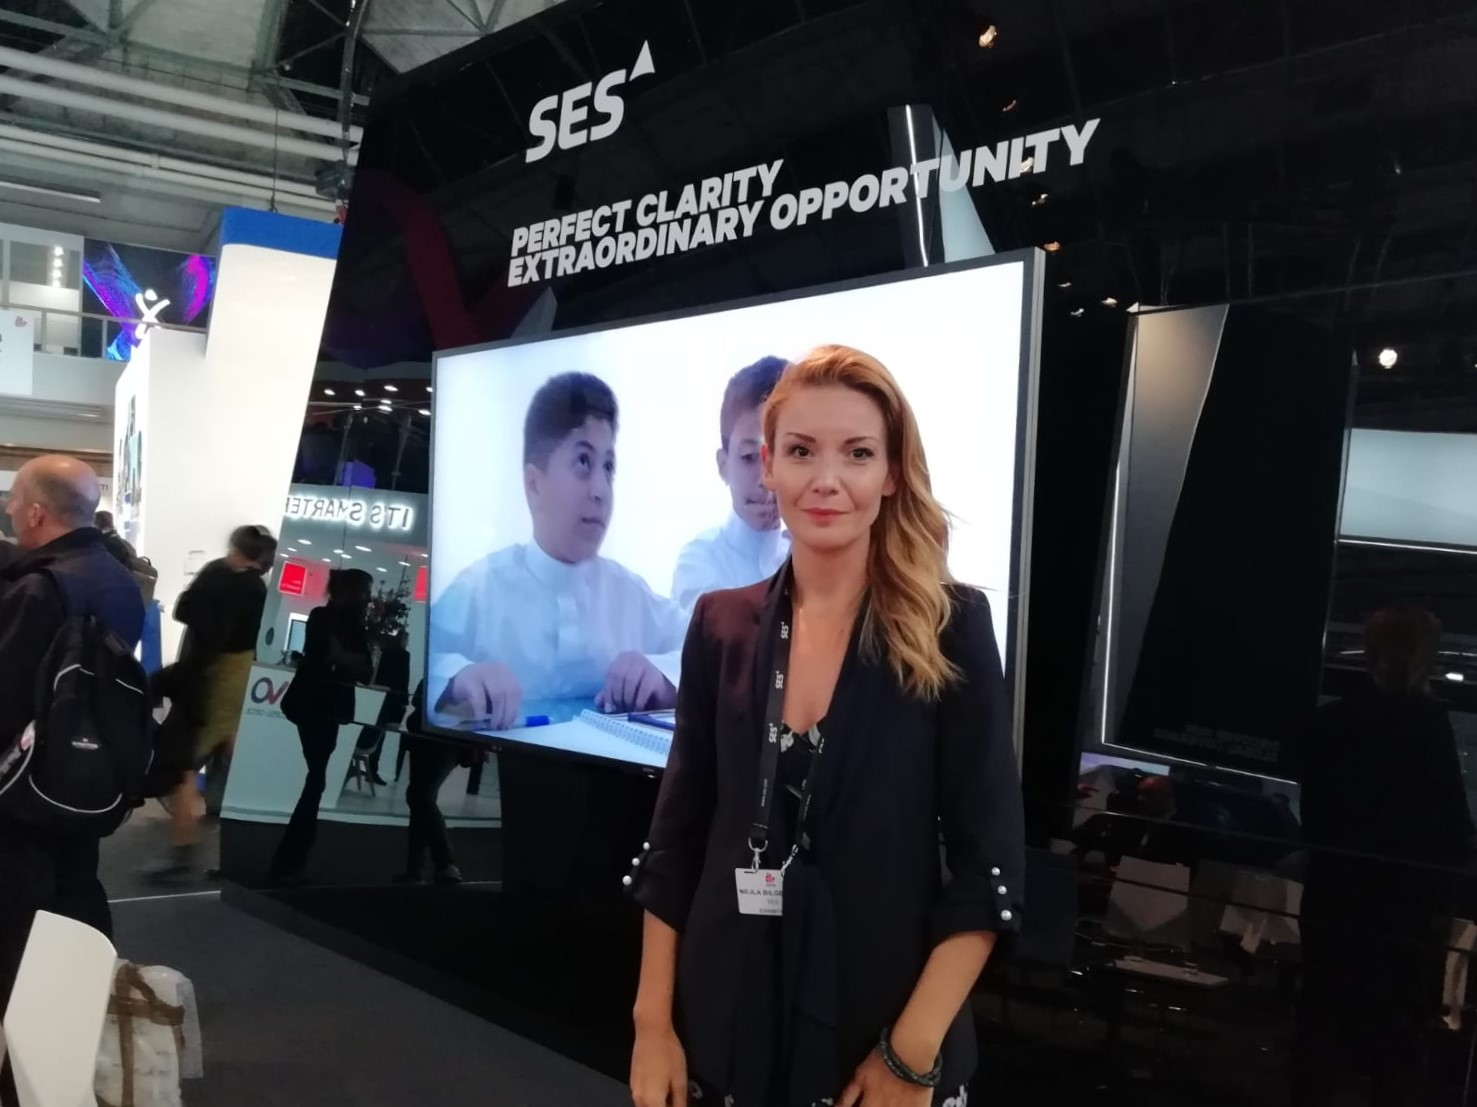 Ms Bilge Atila, SES, at IBC 2018